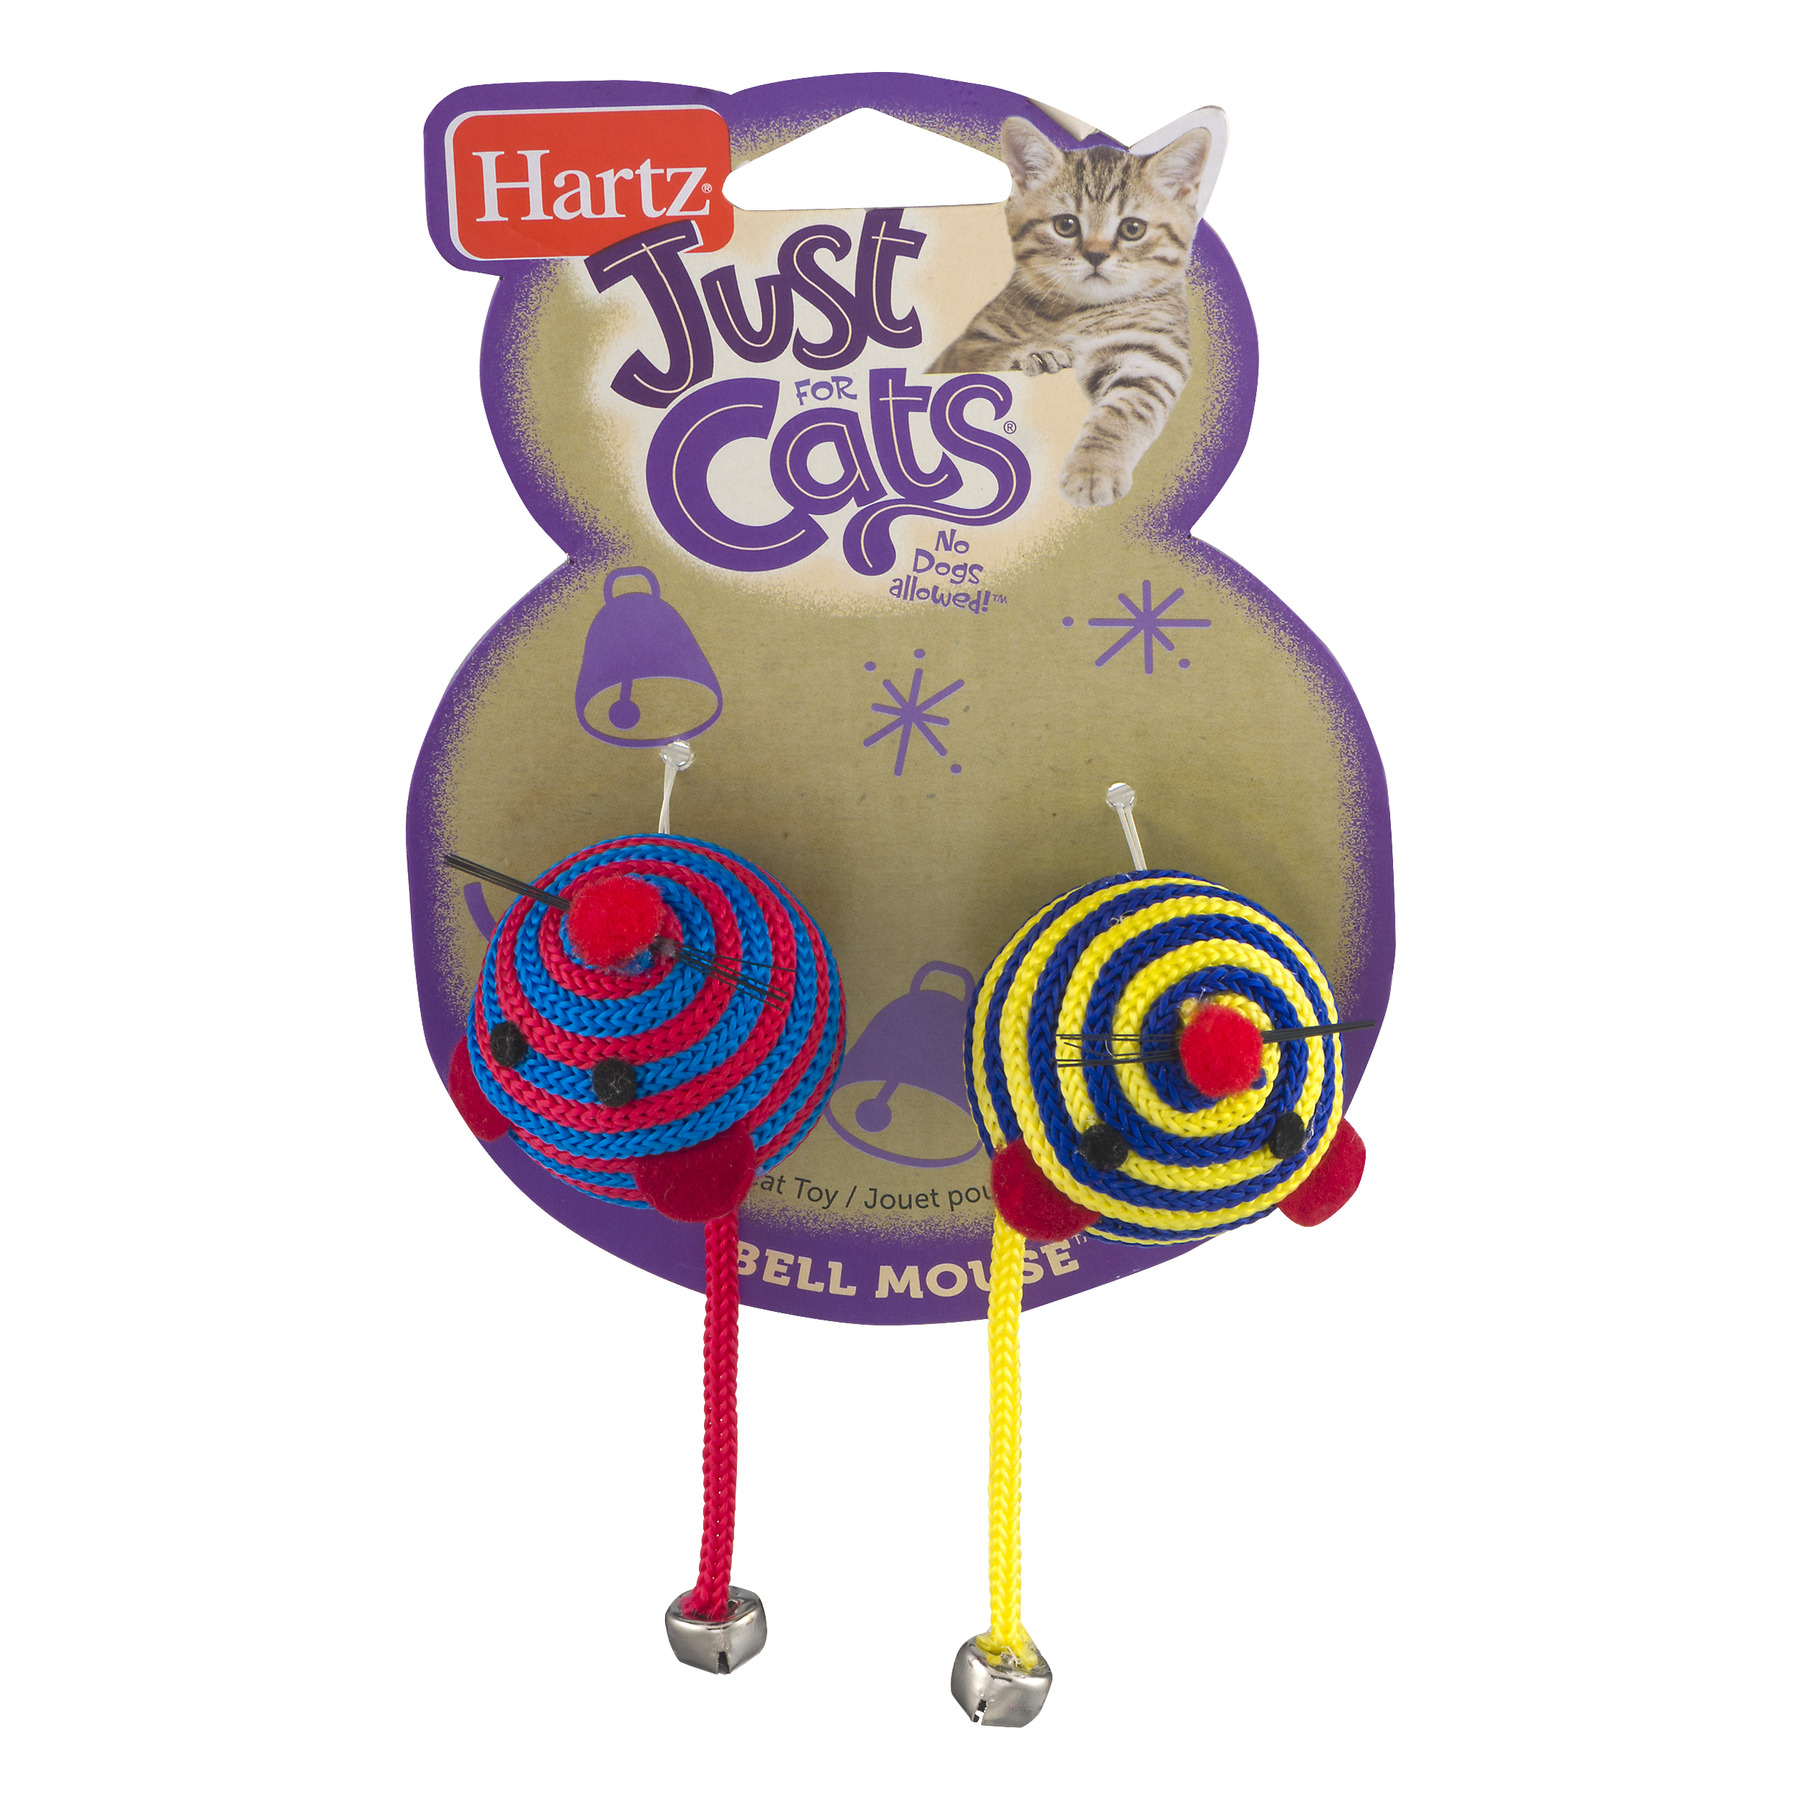 Hartz Just For Cats Cat Toy Bell Mouse 2 CT by The Hartz Mountain Corporation